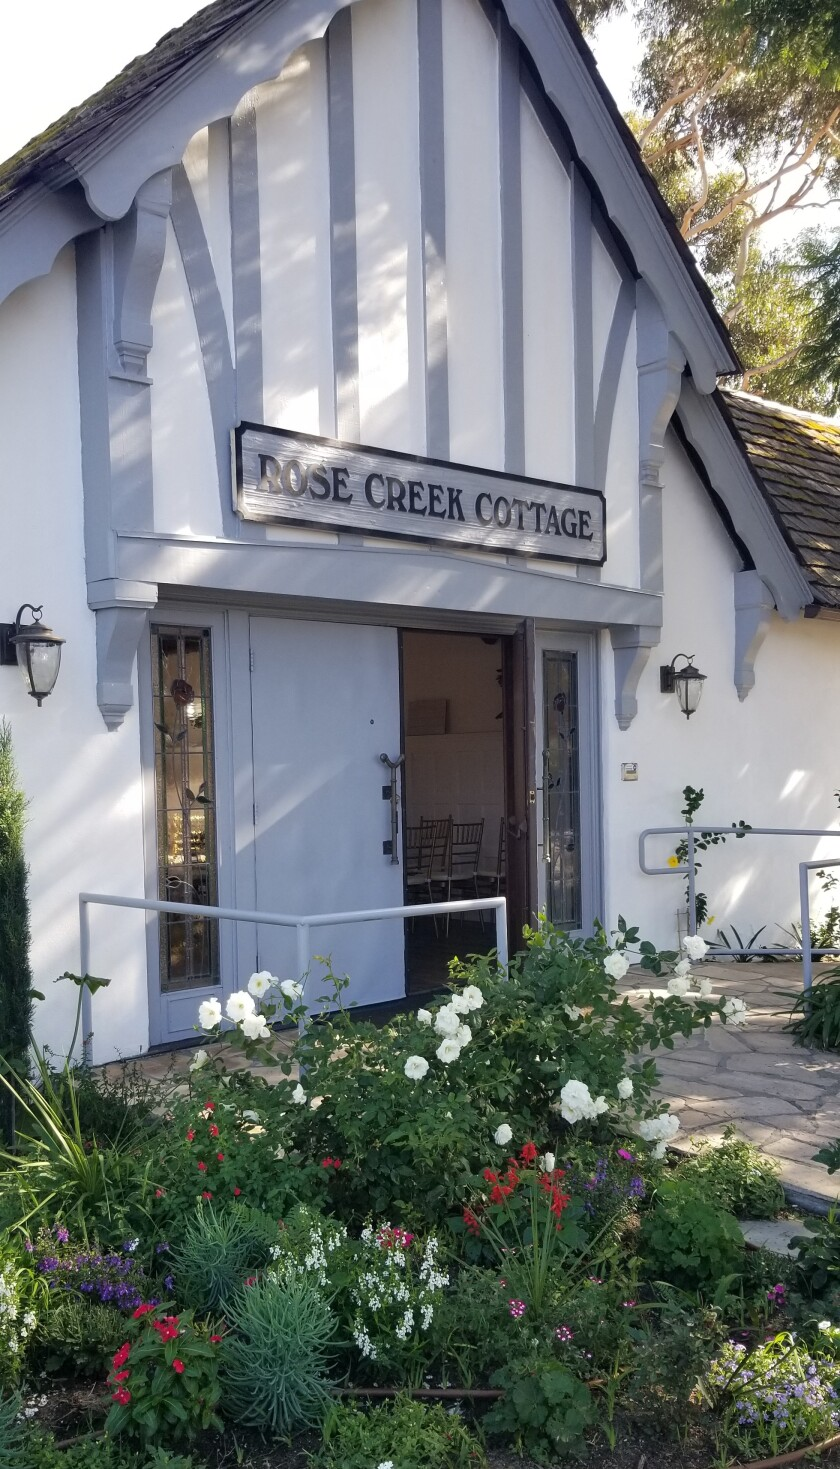 The front of Rose Creek Cottage has been re-painted white with blue-gray accents. Operators Frank and Letizia Gaxiola's love for nature and plants has been incorporated into every corner of the venue.